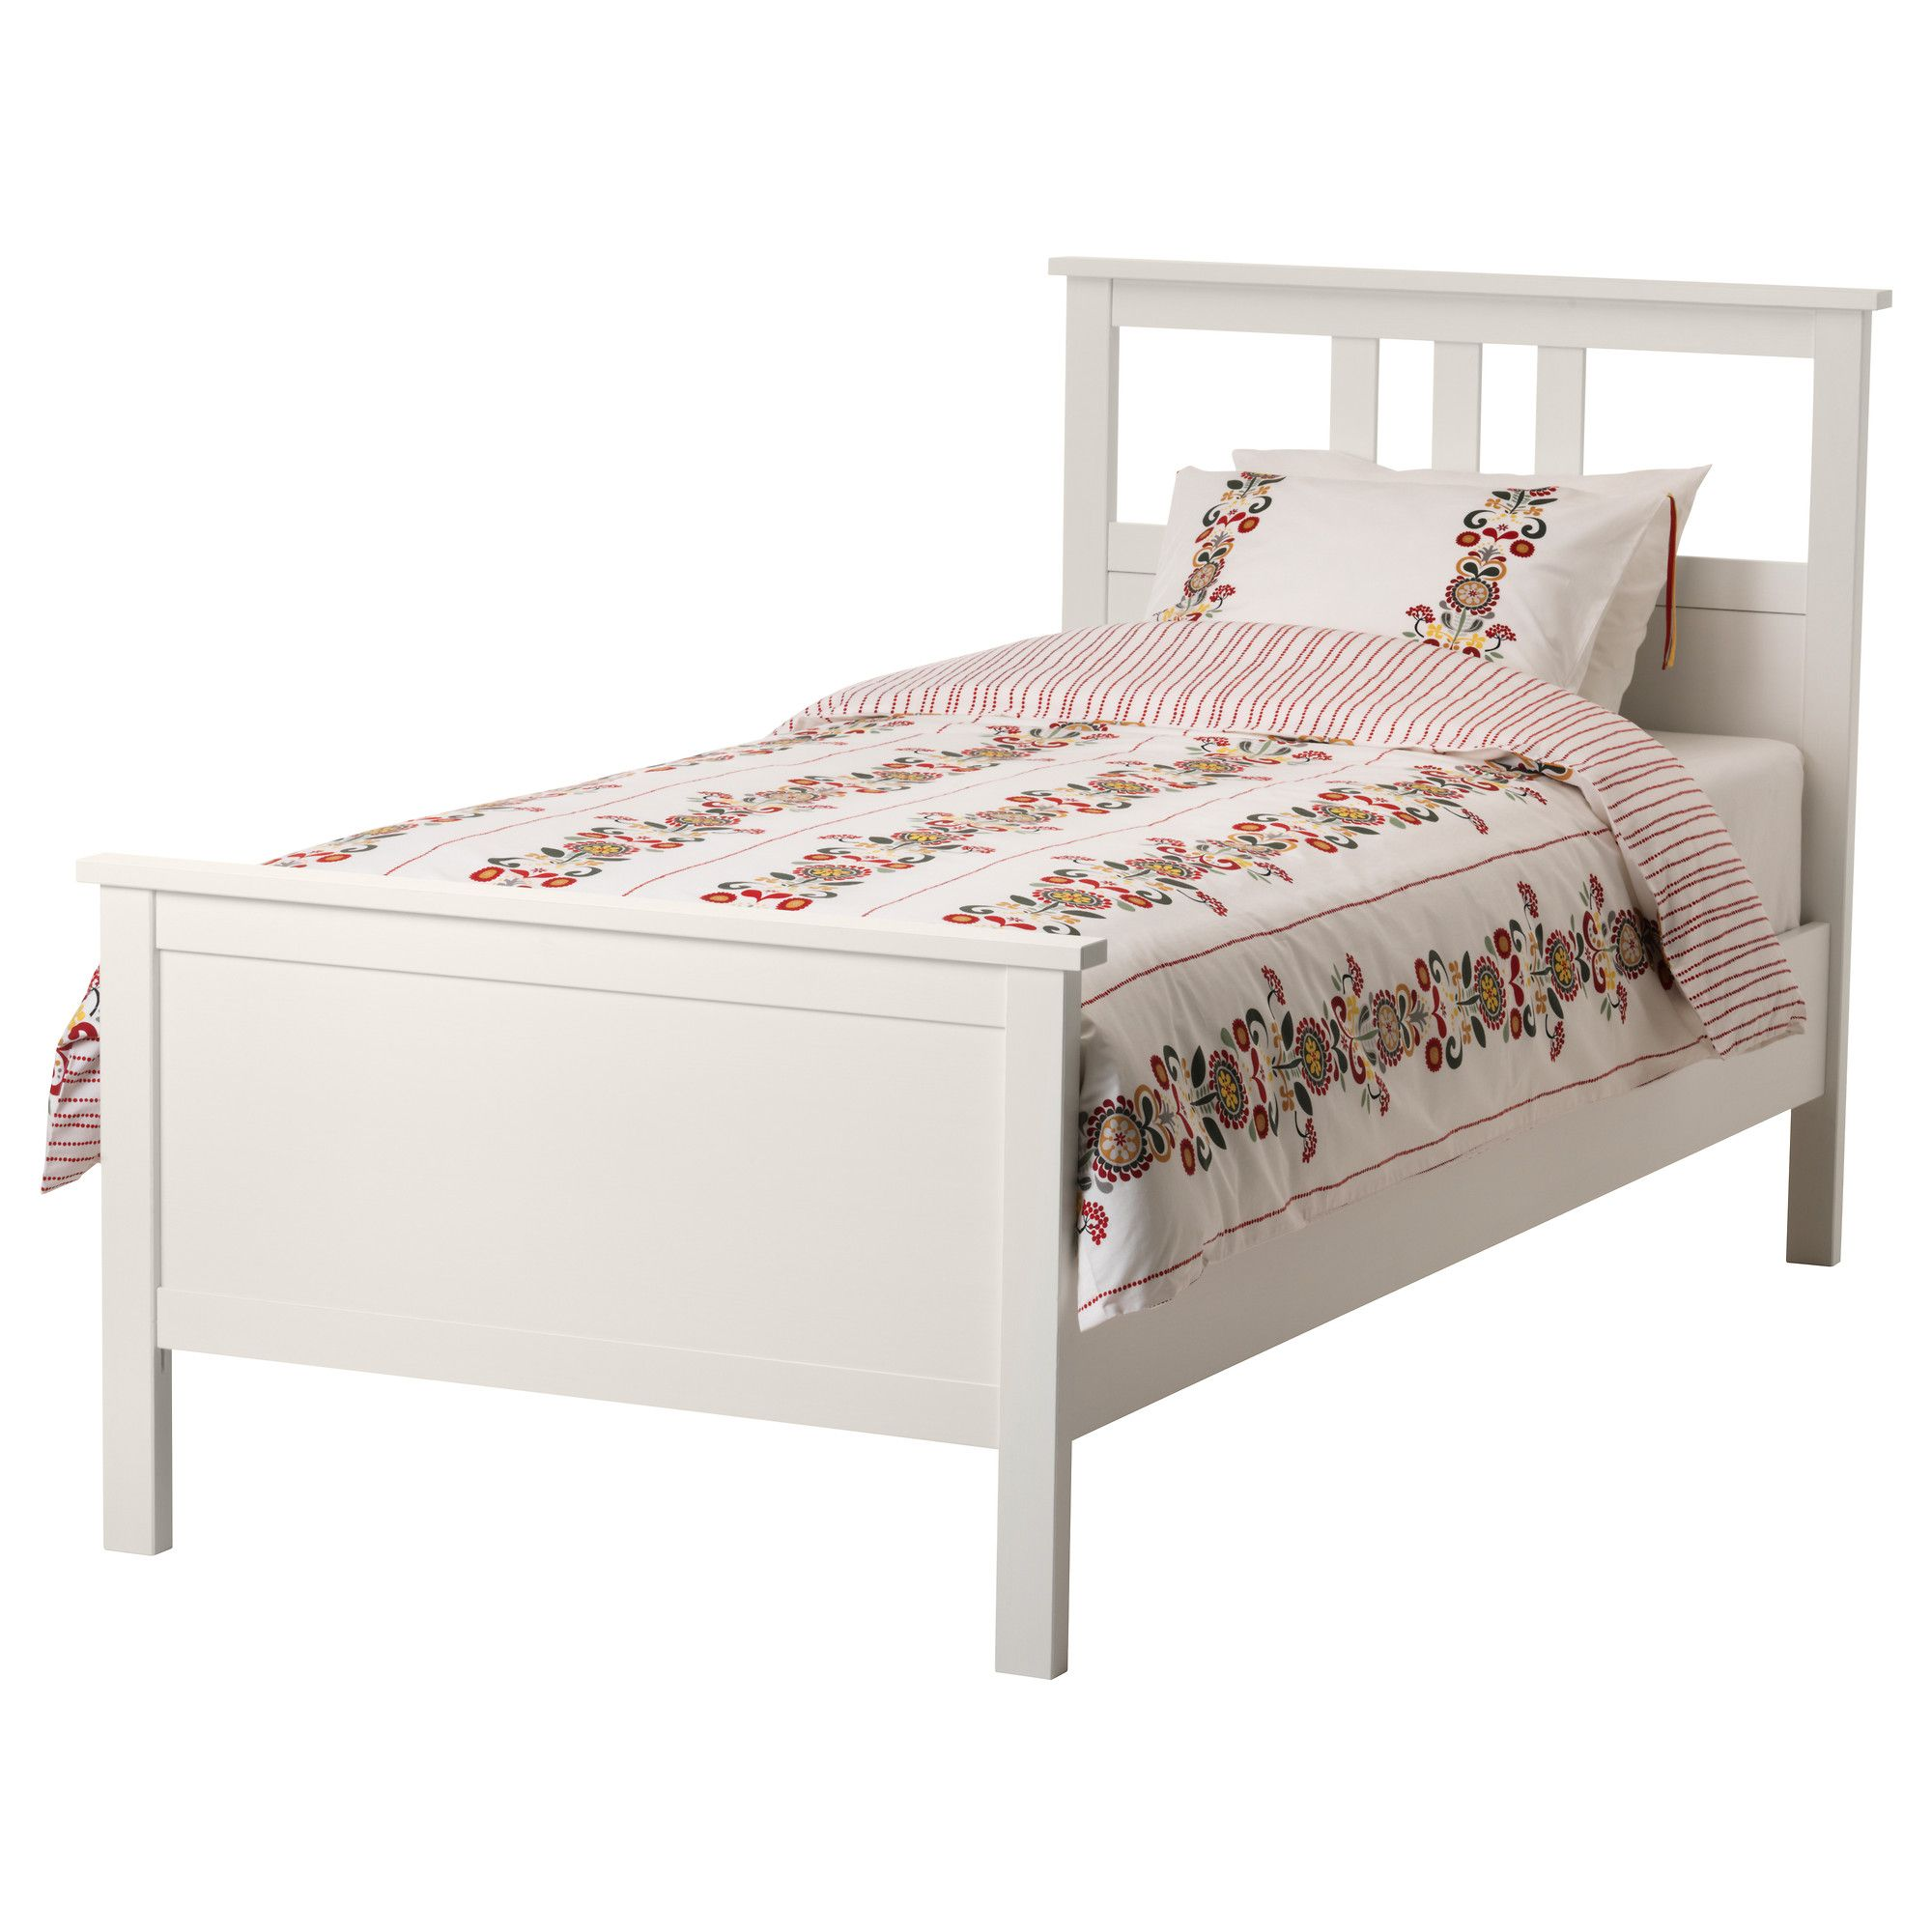 HEMNES Bed frame white stain, Lönset Twin Hemnes bed